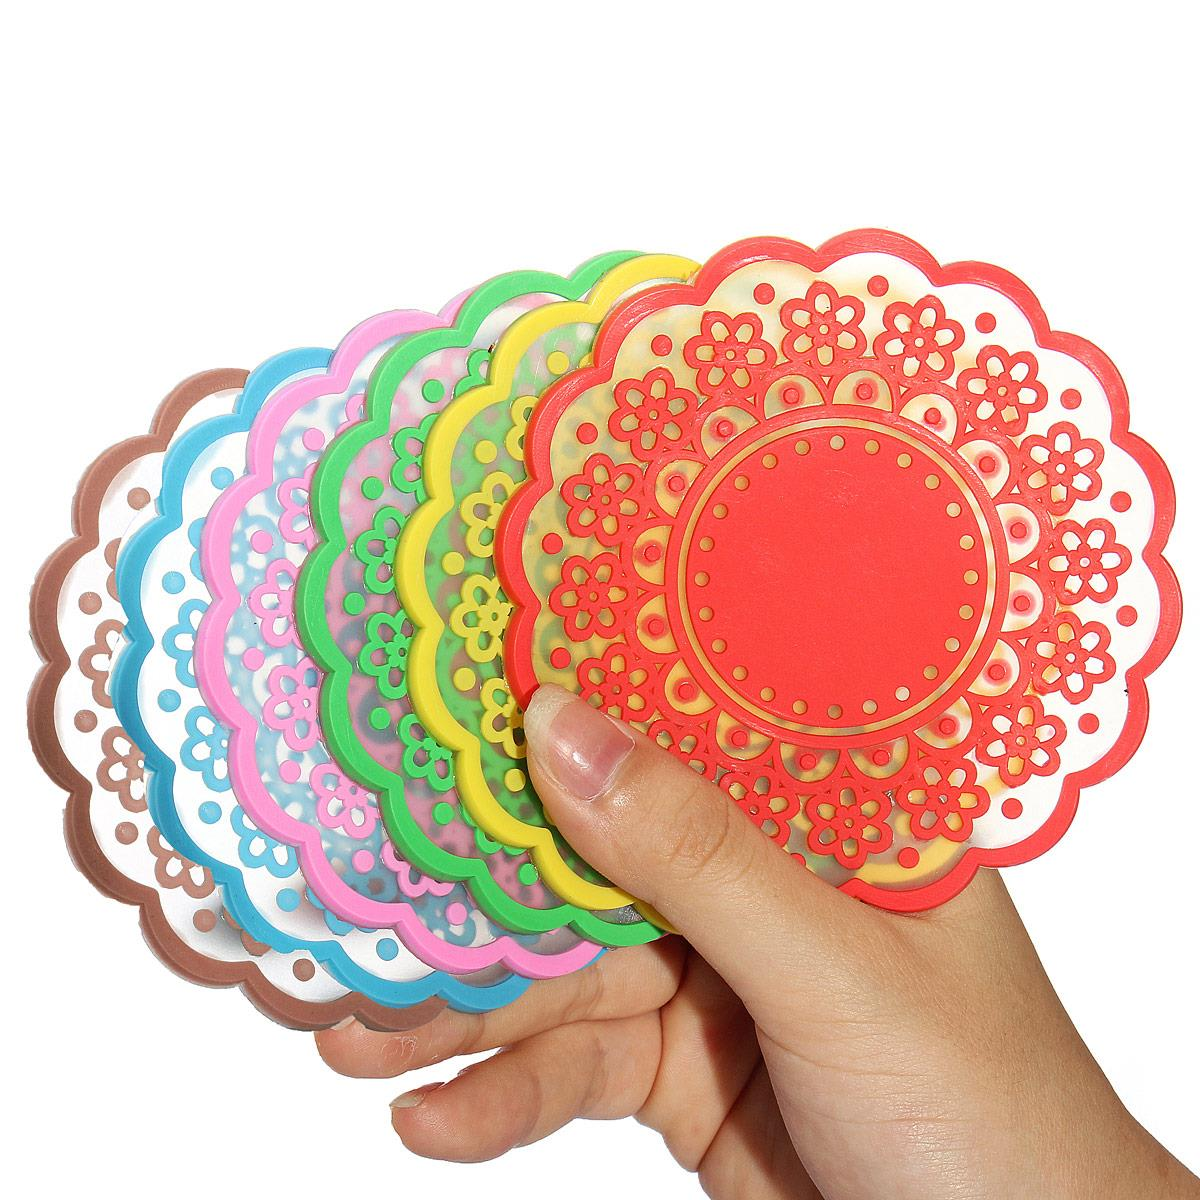 Lace Silicone Coaster Drink Cup Cushion Mat Round Tea Coffee Bowl Holder  Wedding Tableware Placemat Heat Resistant Pad 2pcs